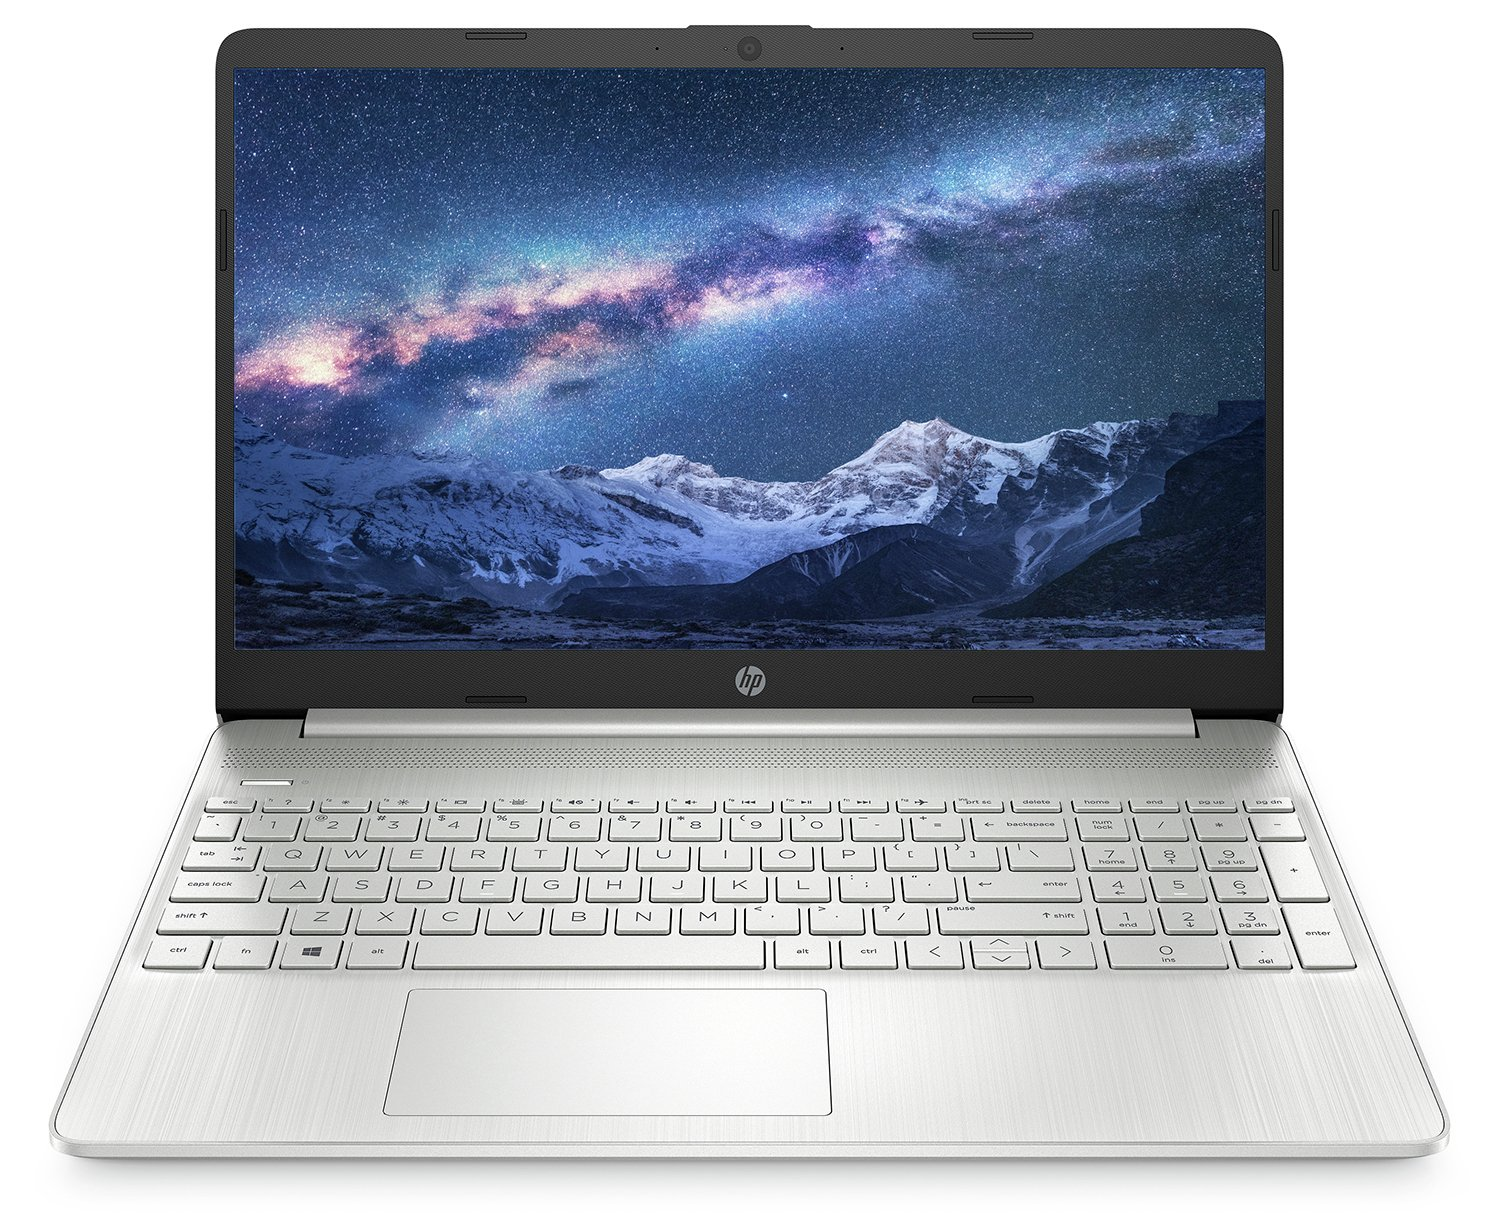 HP 15.6 Inch Slim i7 8GB 512GB FHD Laptop - Silver